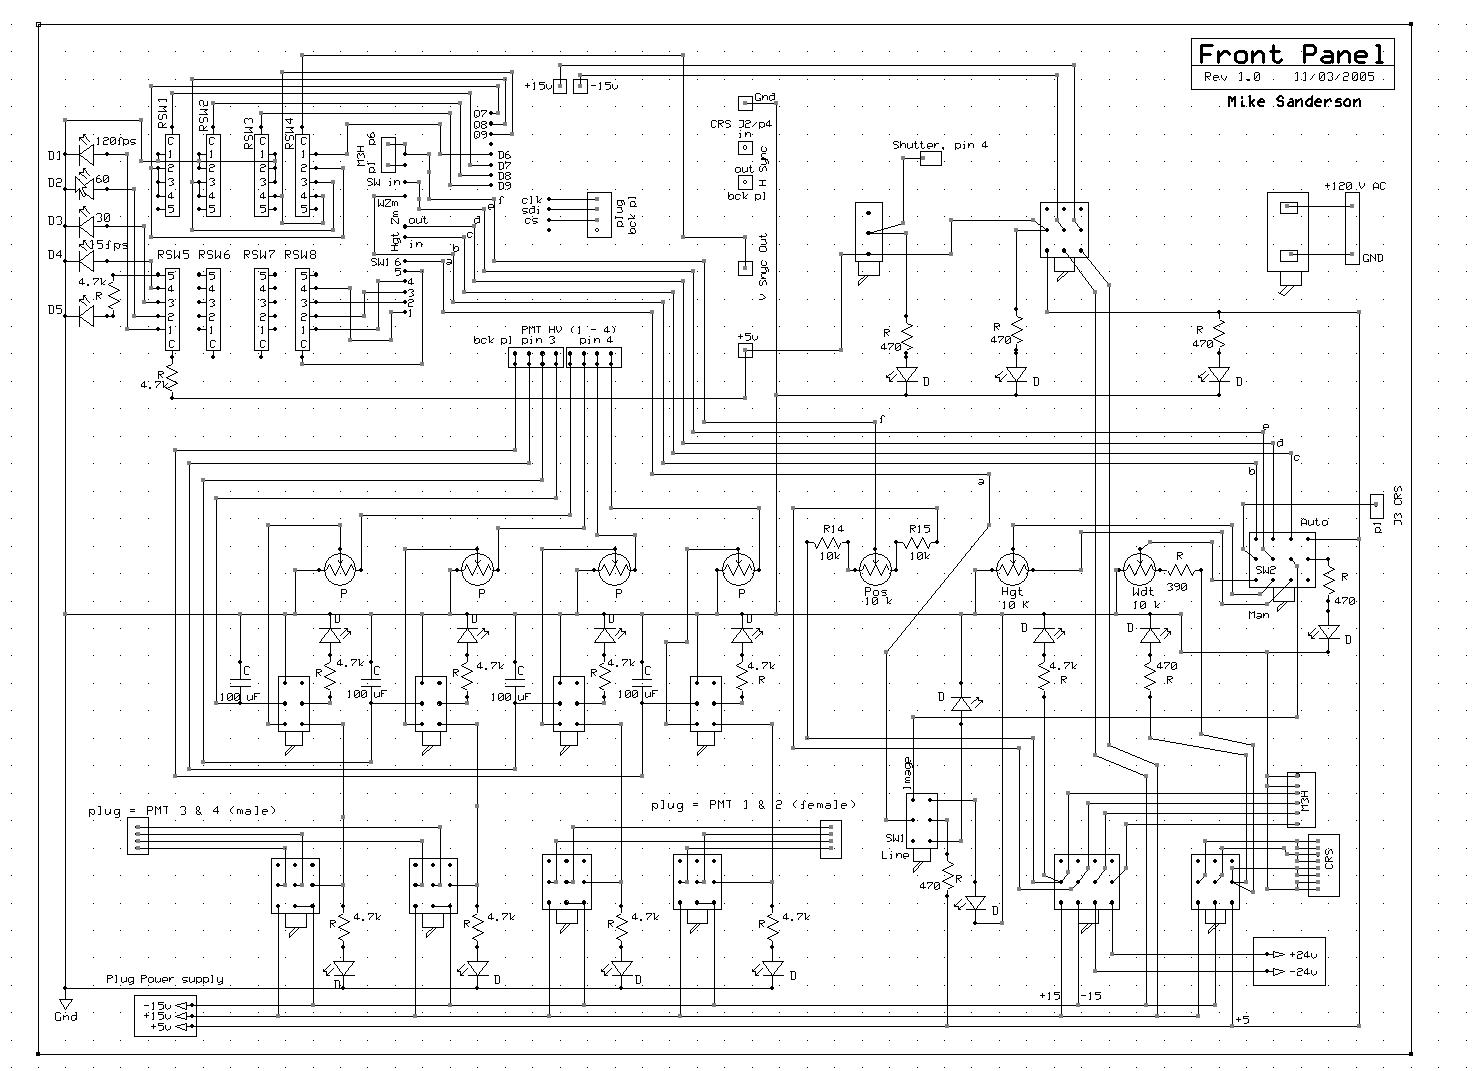 Wiring diagram in this sel generator control panel get